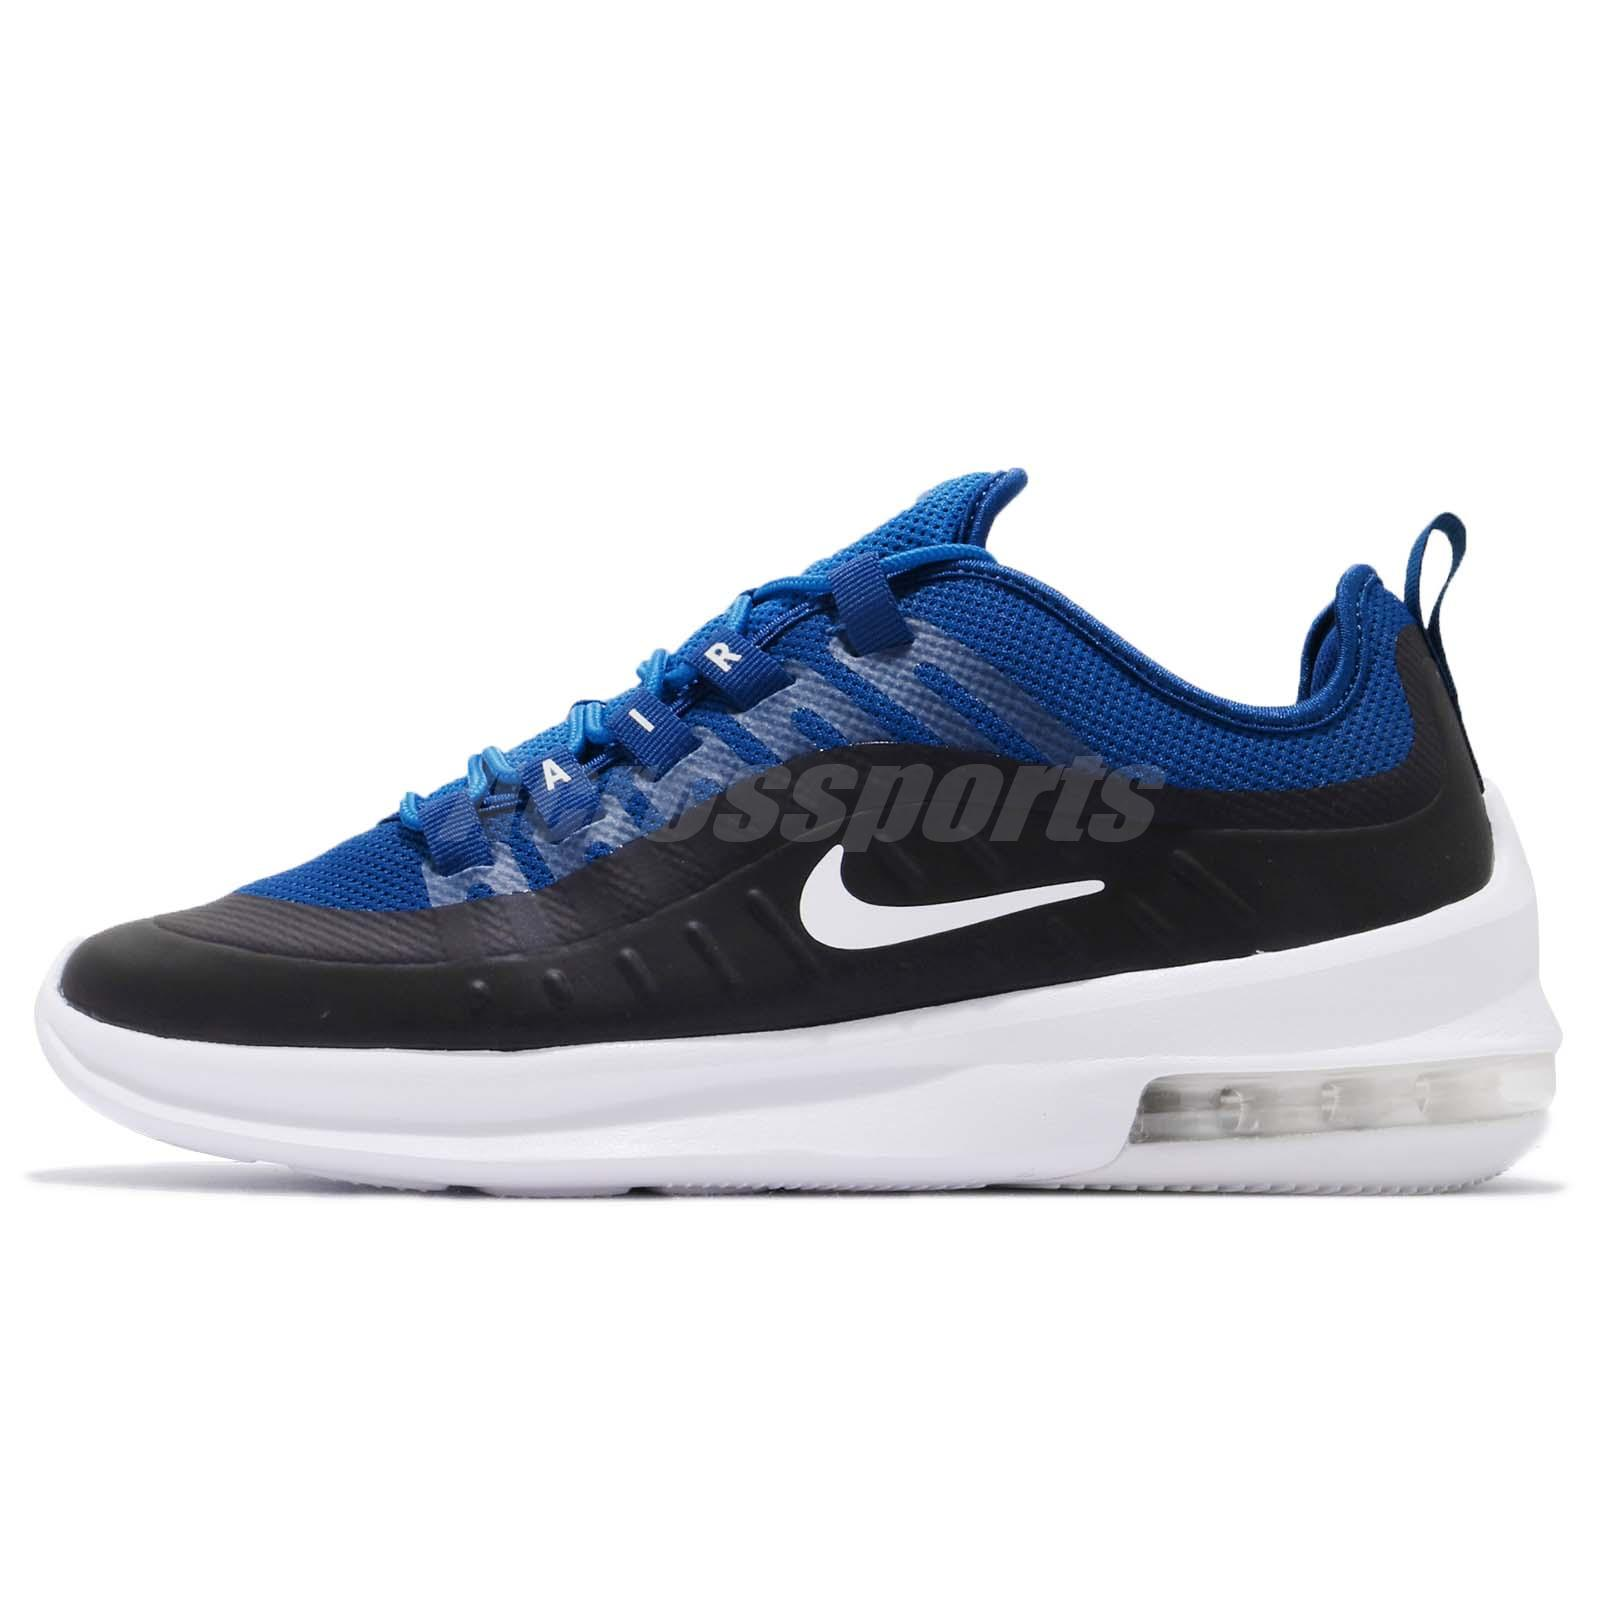 207dd4c3271a1 Nike Air Max Axis Black Blue White Men Running Casual Shoes Sneakers AA2146 -400